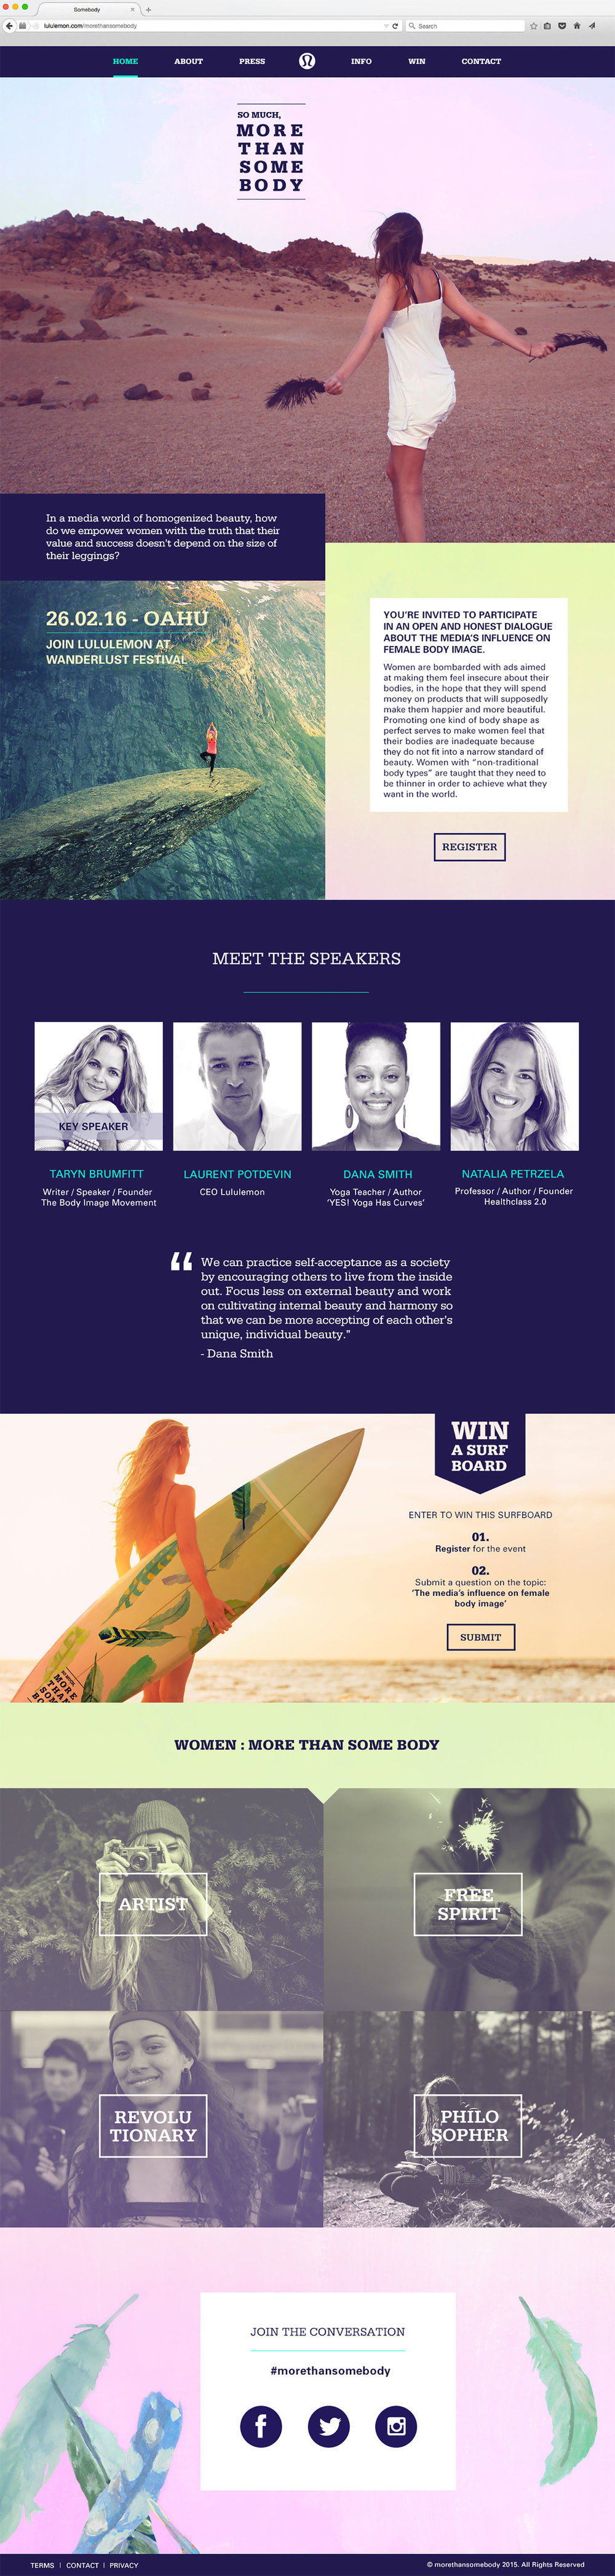 Lululemon event campaign website design concept, featuring pastel gradient, typesetting, homepage, navigation, event speakers bio and inspiring images of powerful women.